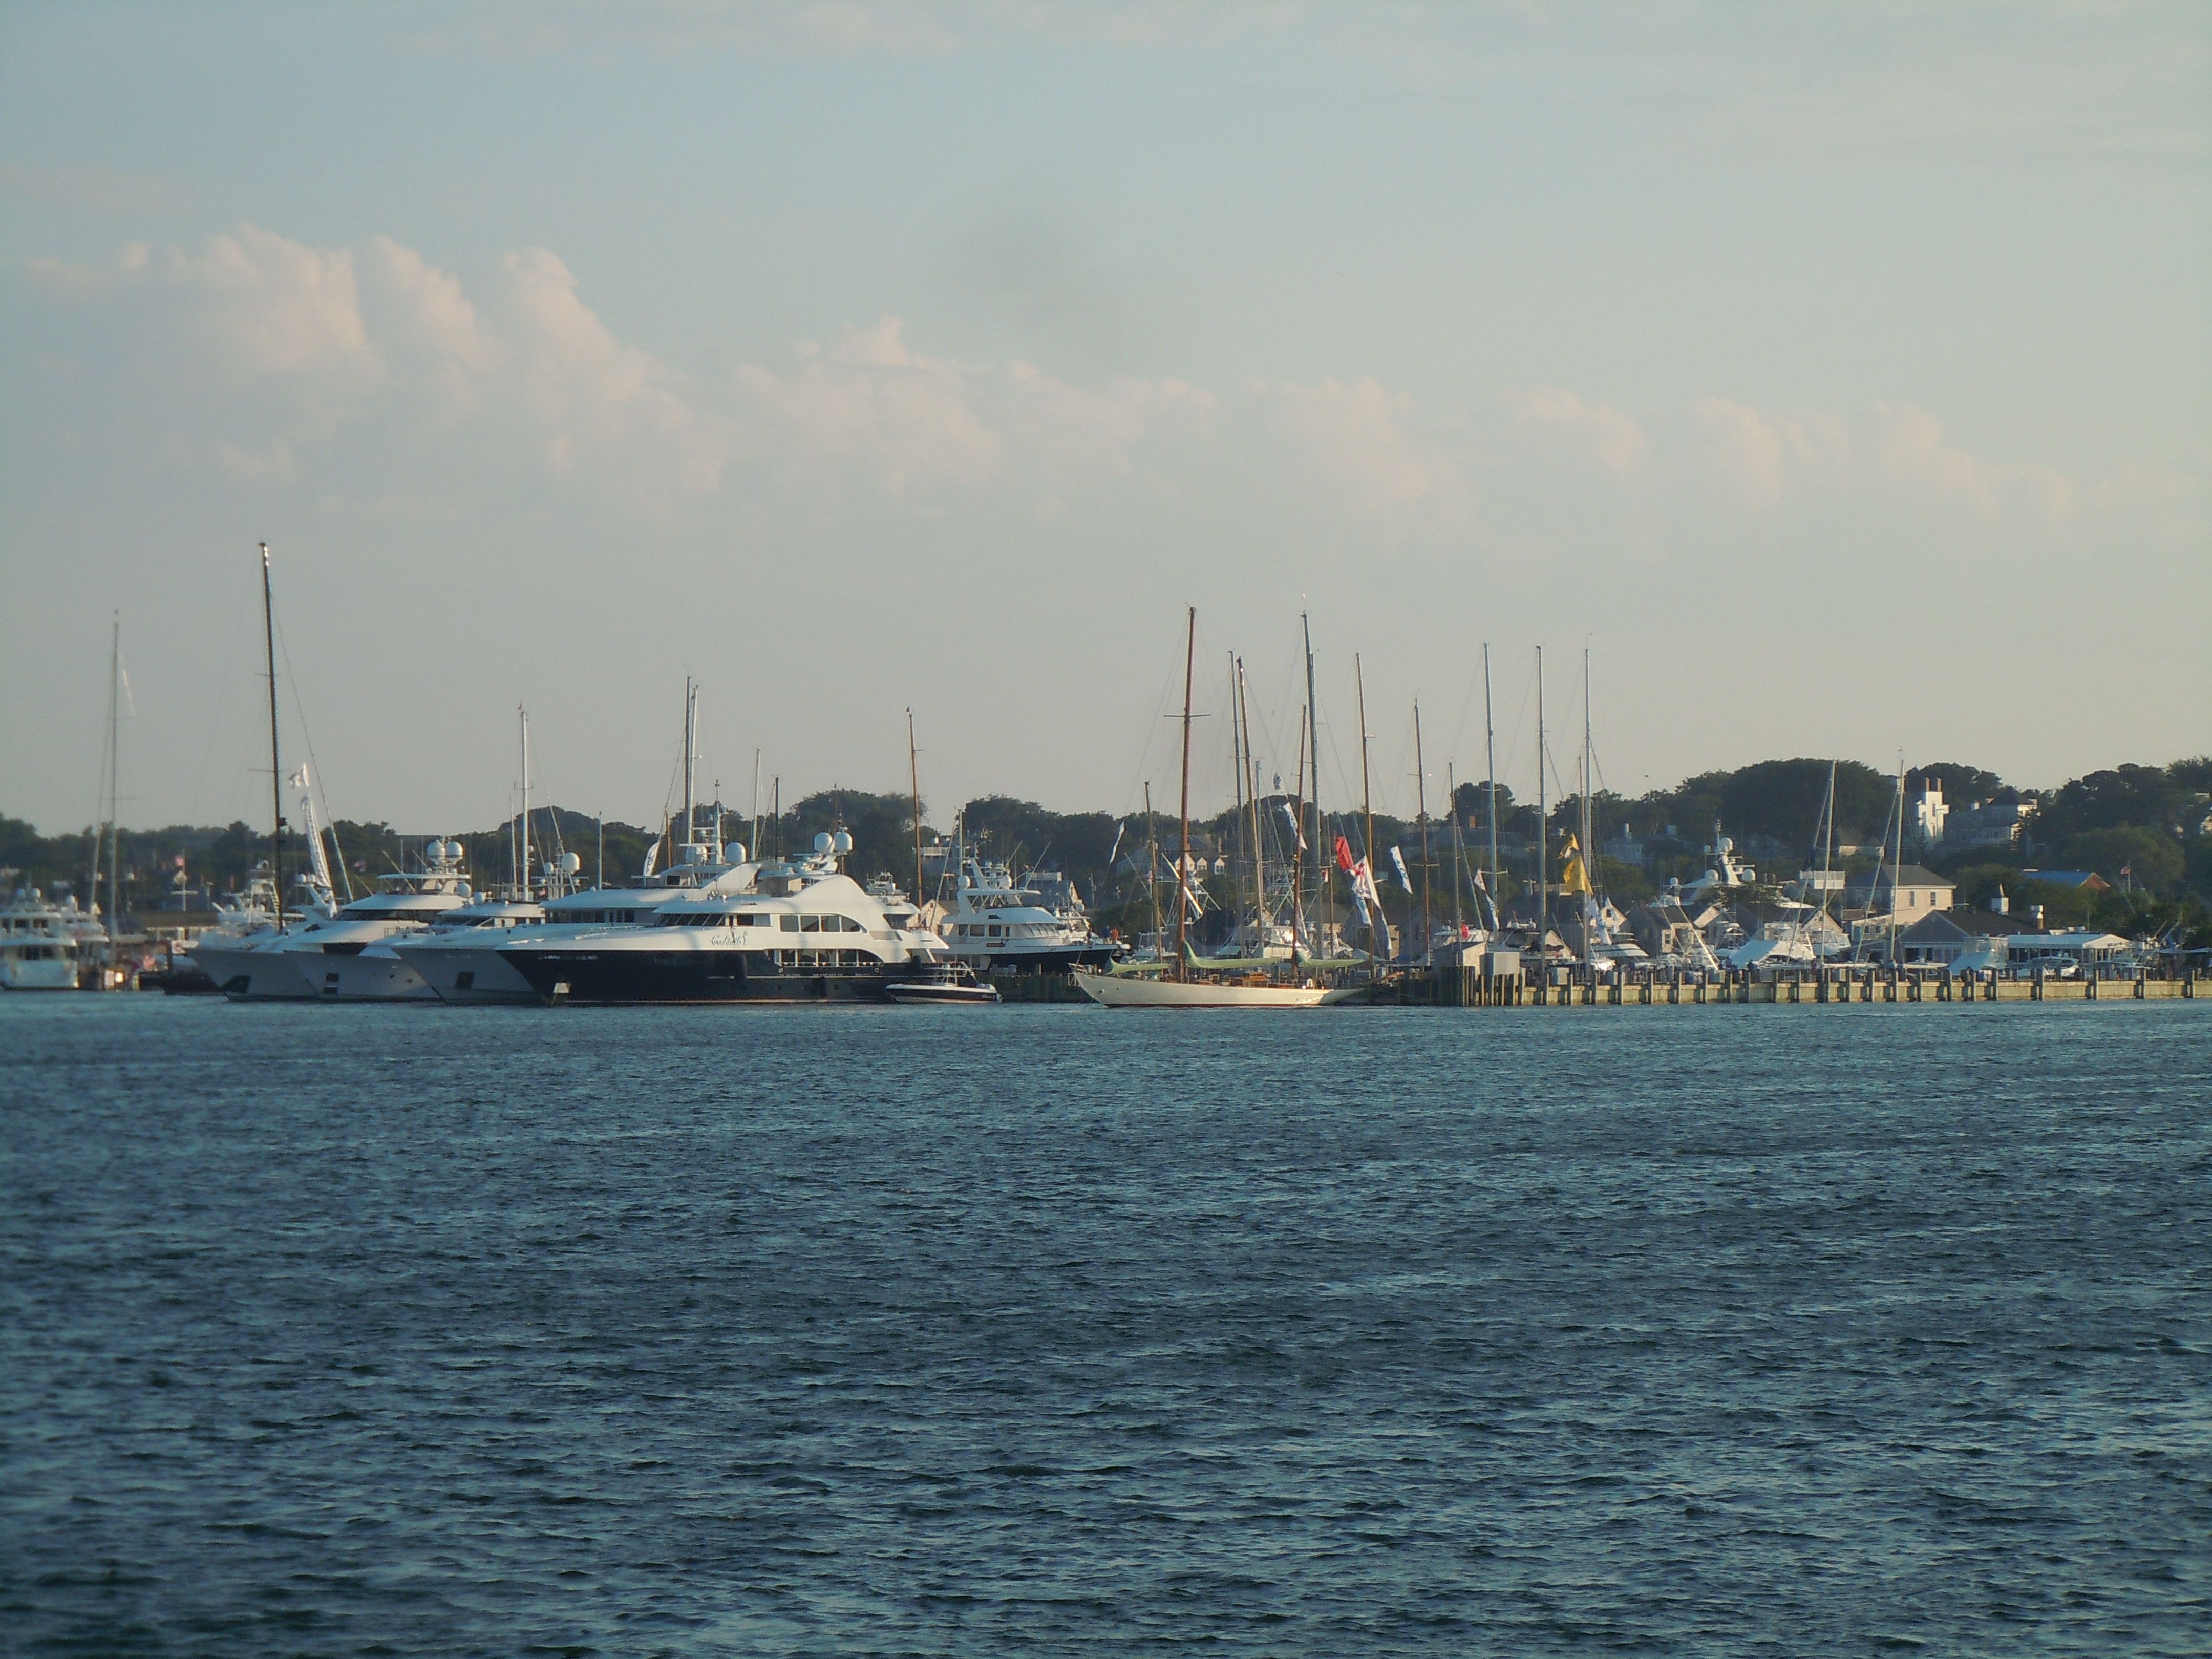 nantucket. photo credit HunterReedNantucket.com